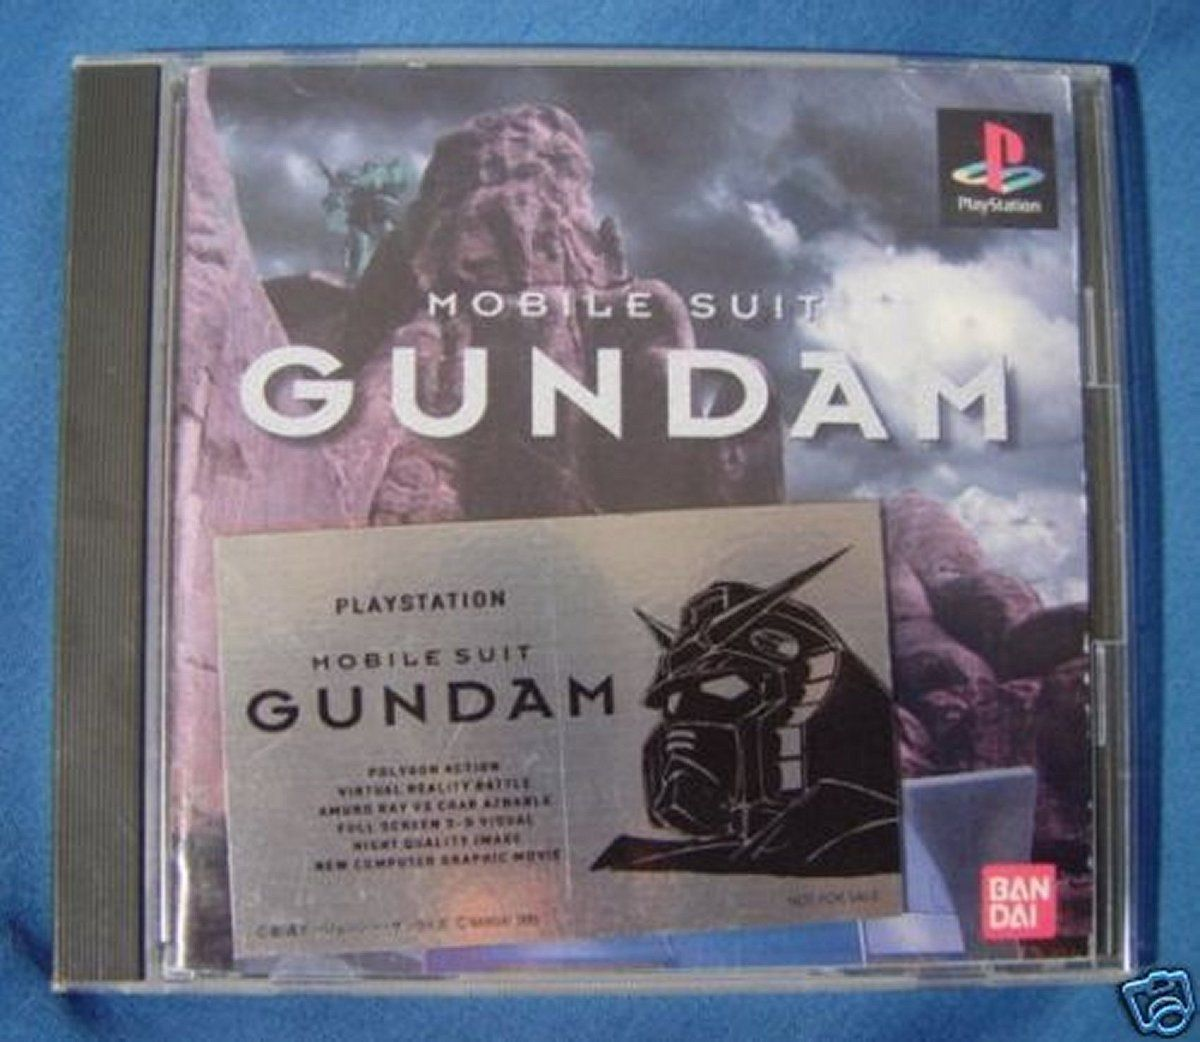 PS1 Japanese : Mobile Suit #Gundam SLPS 00035 http://www.japanstuff.biz/ CLICK THE FOLLOWING LINK TO BUY IT ( IF STILL AVAILABLE ) http://www.delcampe.net/page/item/id,0377623980,language,E.html